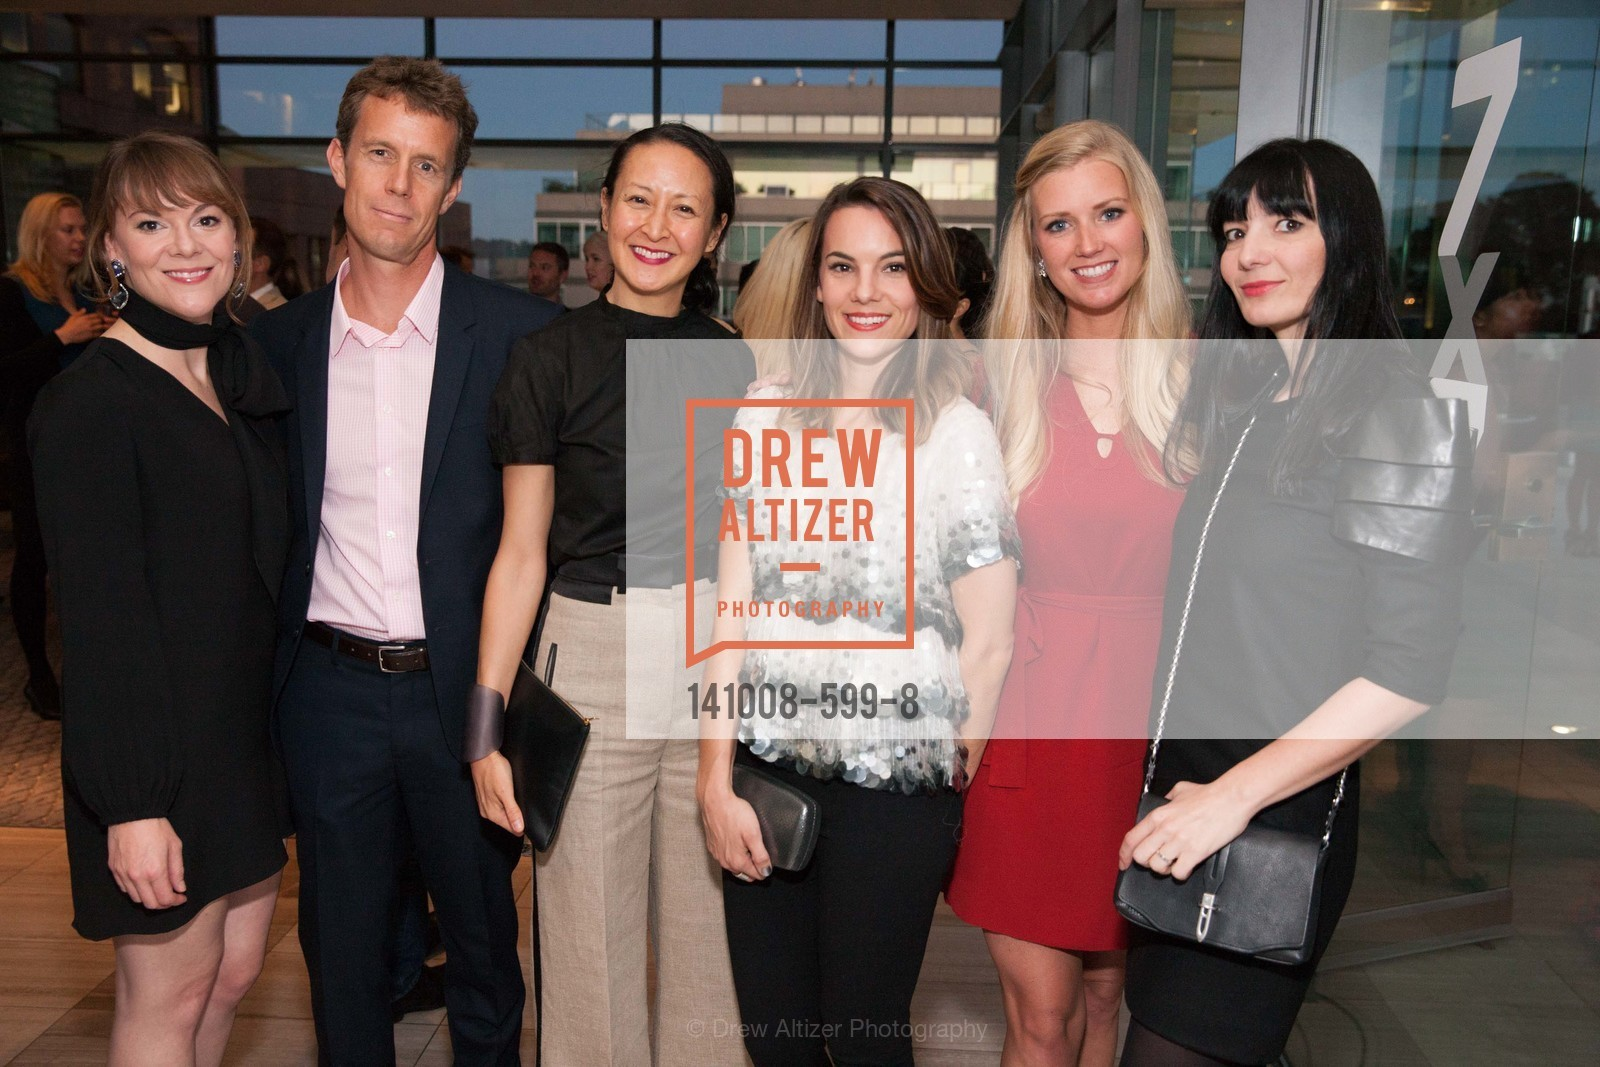 Chloe Harris, Jothen Frey, Tina Frey, Natalie Wages, Ann Bedwell, Camelia Zkikos, 7x7 HOT 20, US, October 8th, 2014,Drew Altizer, Drew Altizer Photography, full-service agency, private events, San Francisco photographer, photographer california